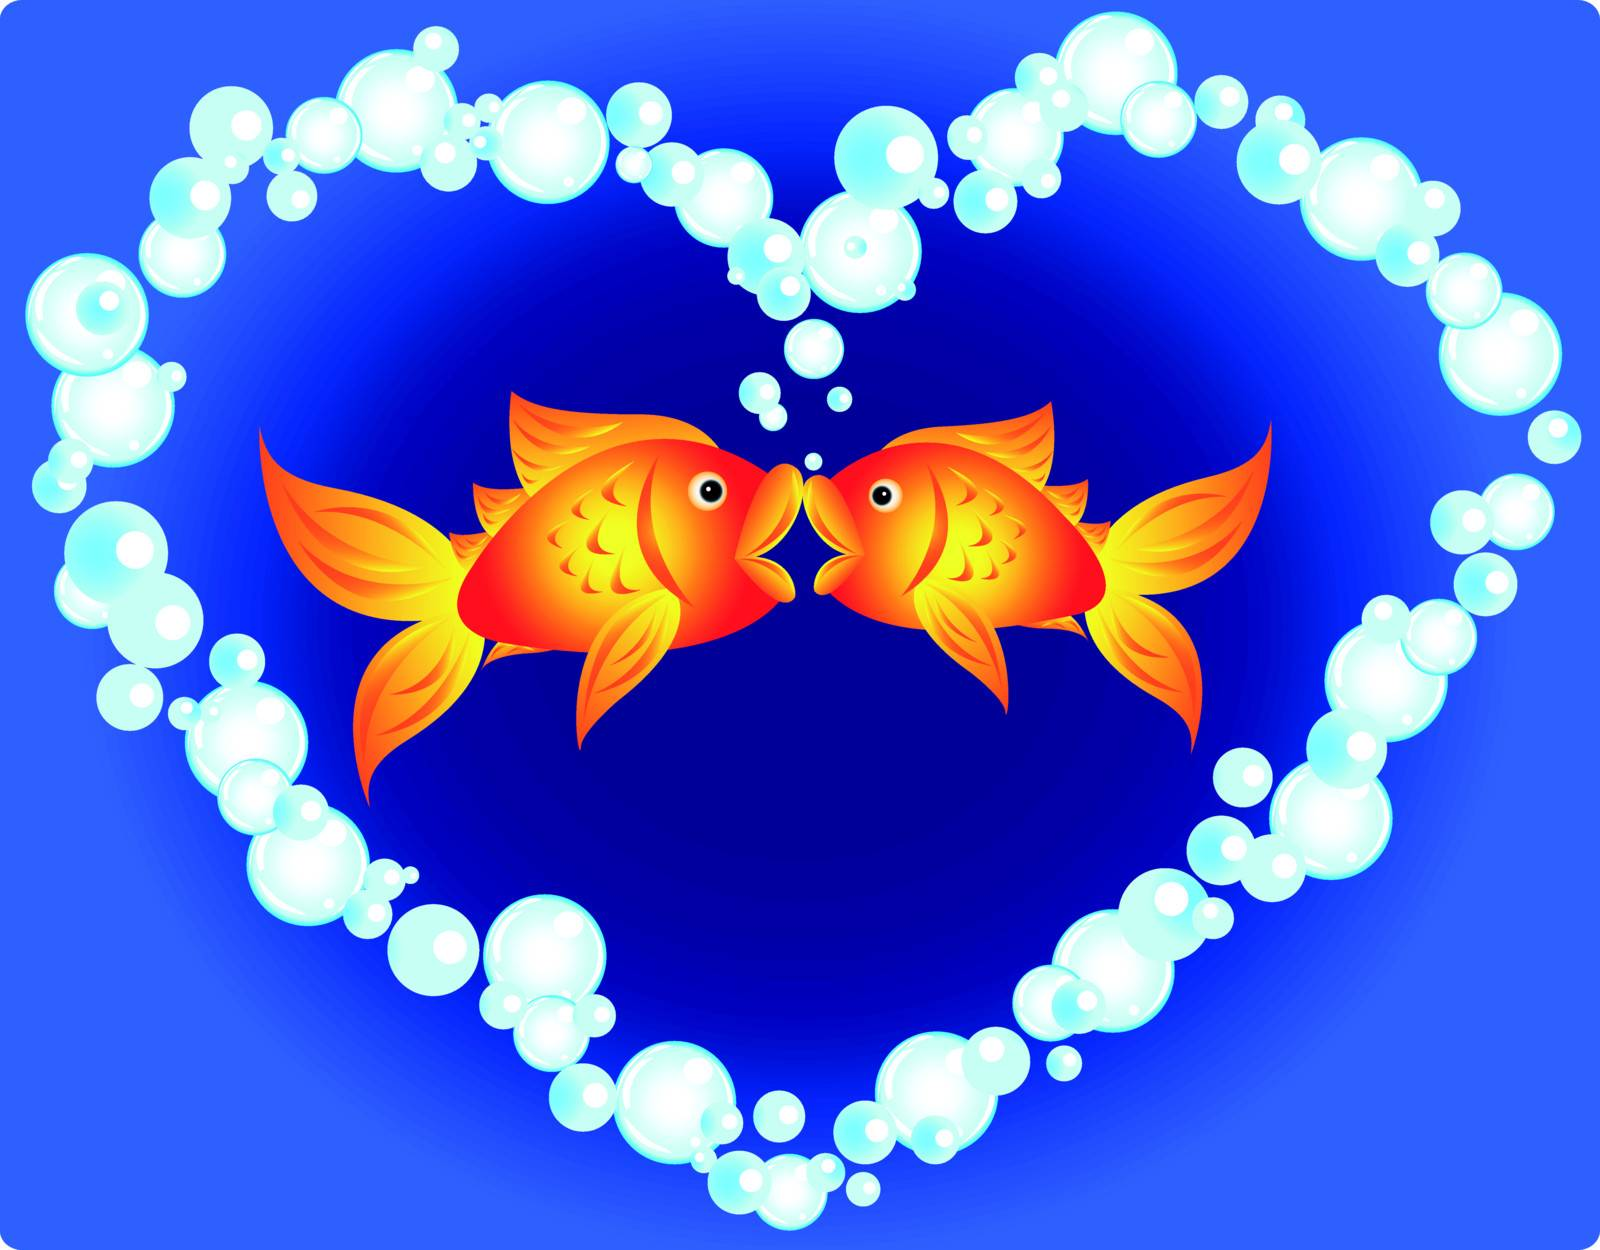 Couple of cartoon goldfish in love, kissing in a heart shape made of air bubbles, fun valentine's card or other love related occasion.